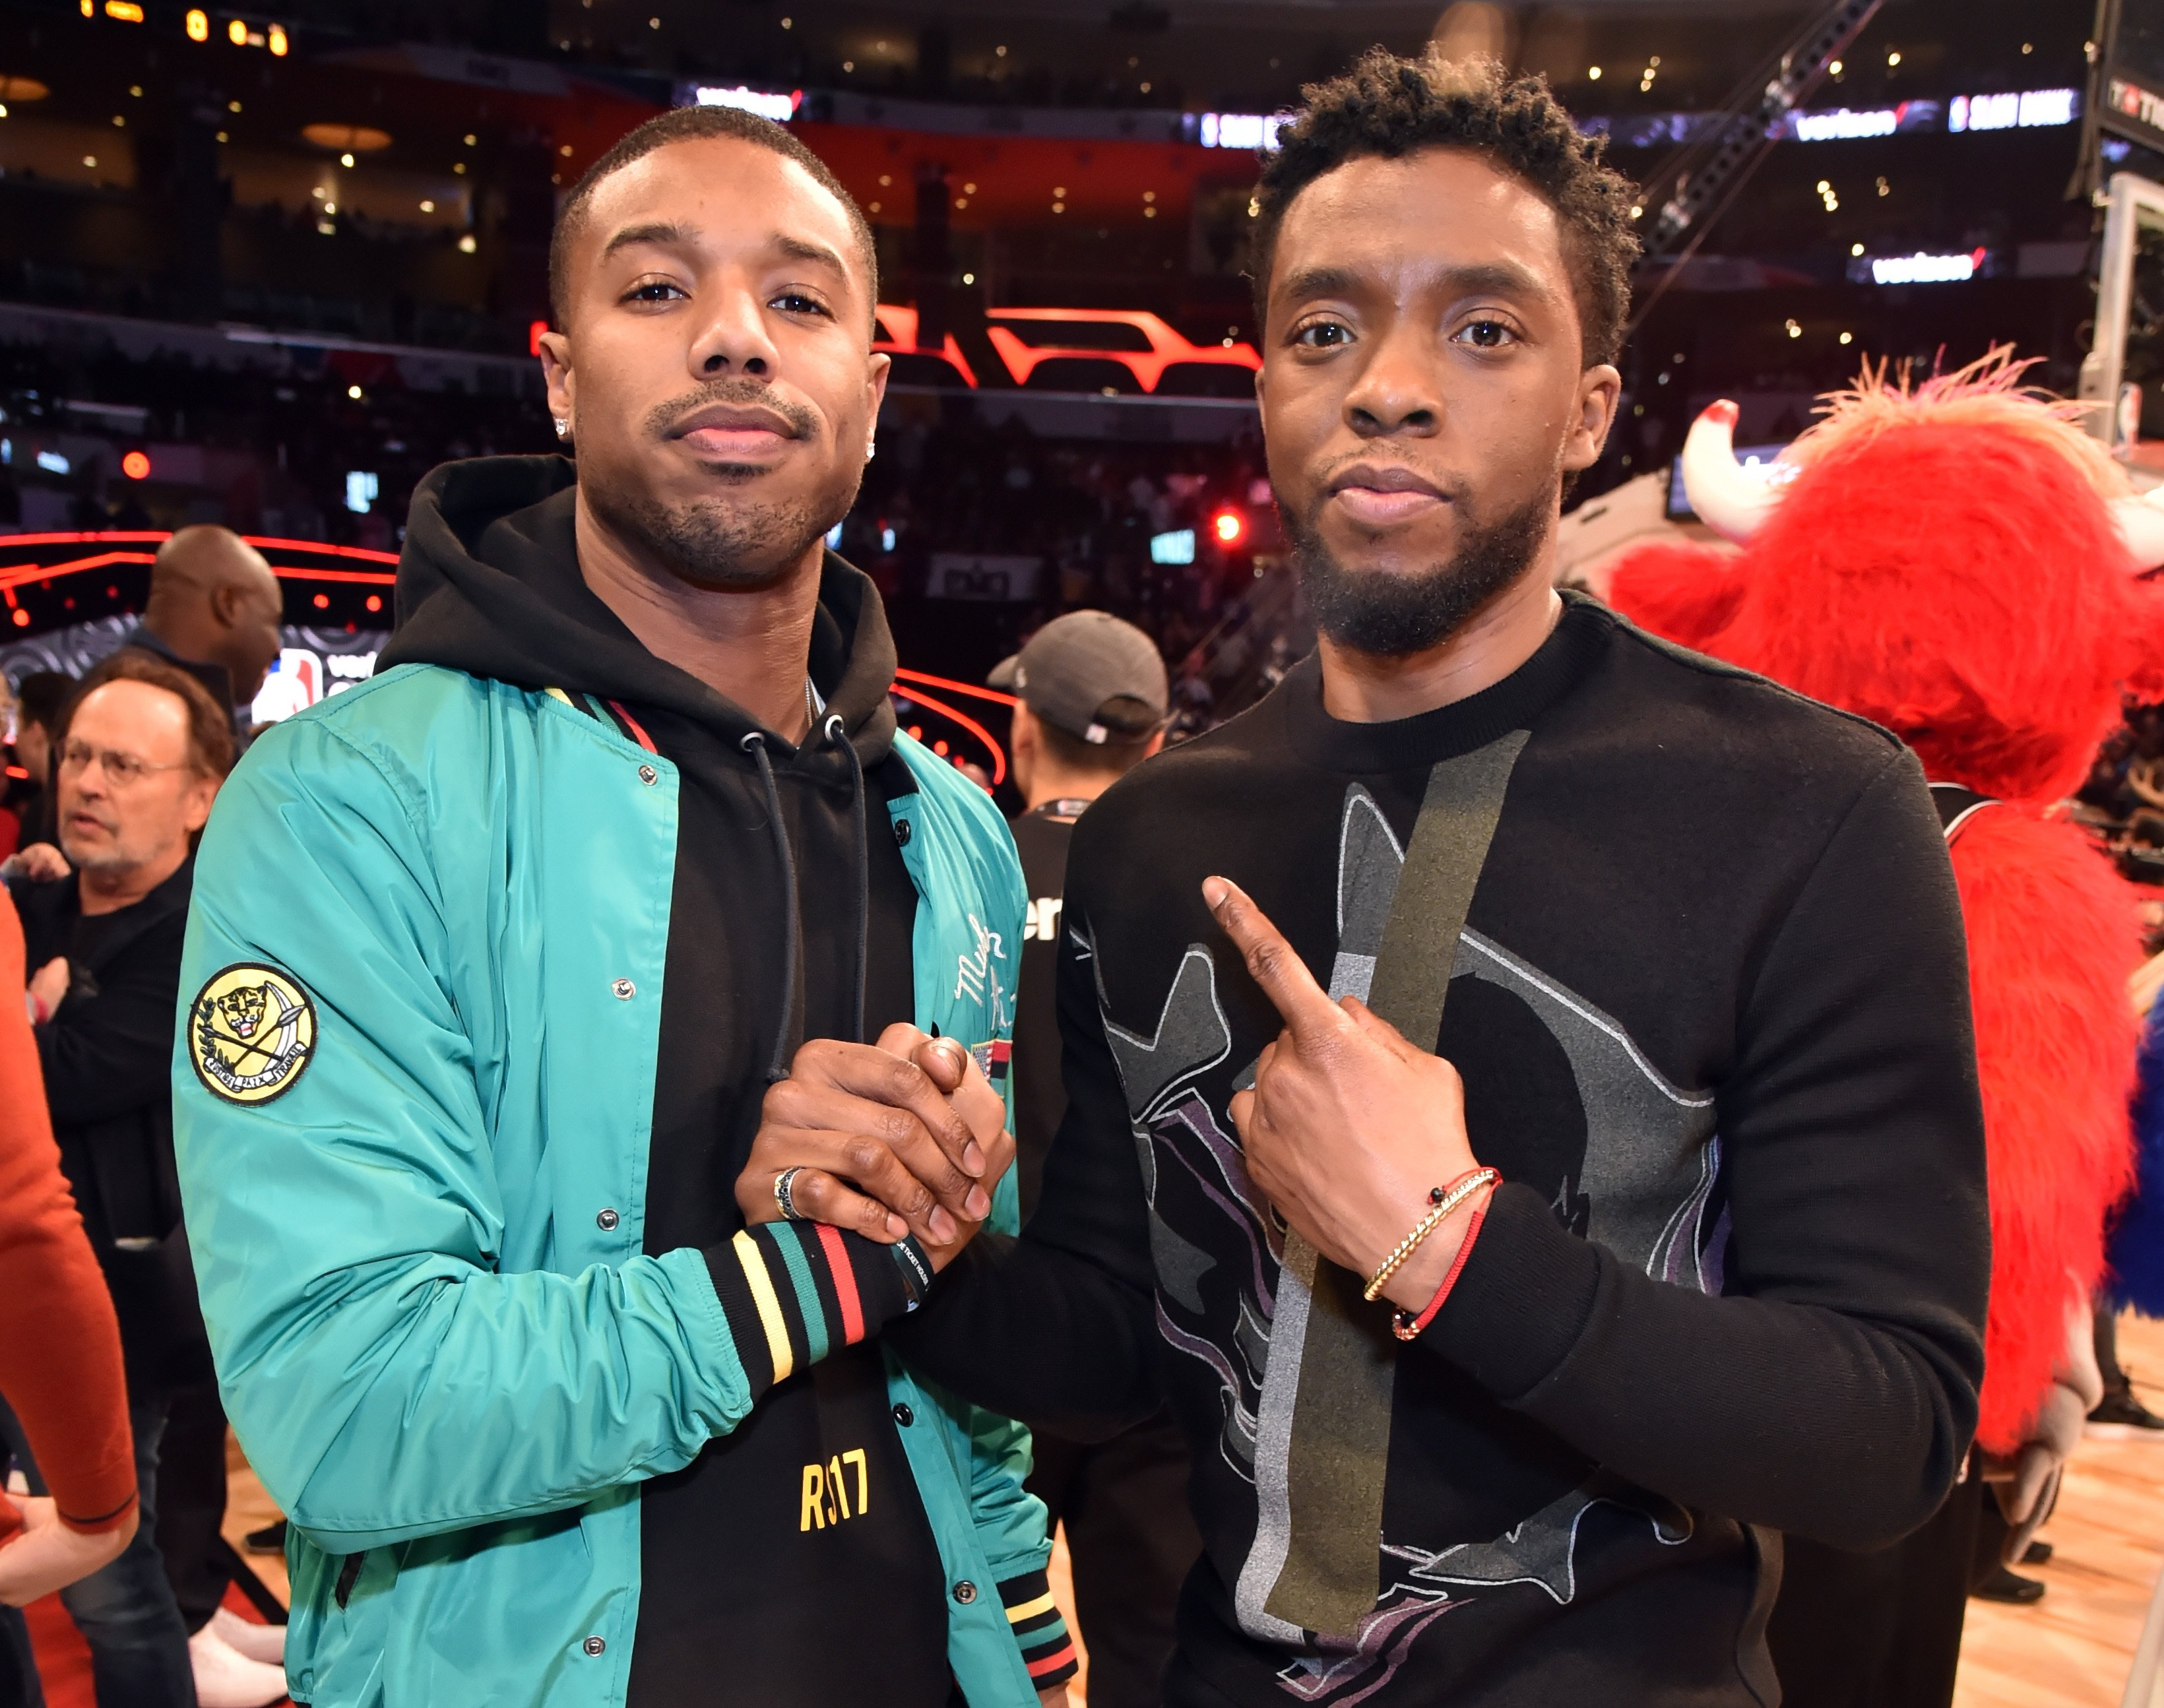 Image Credits: Getty Images / Kevin Mazur / WireImage | Michael B. Jordan and Chadwick Boseman attend the 2018 State Farm All-Star Saturday Night at Staples Center on February 17, 2018 in Los Angeles, California.